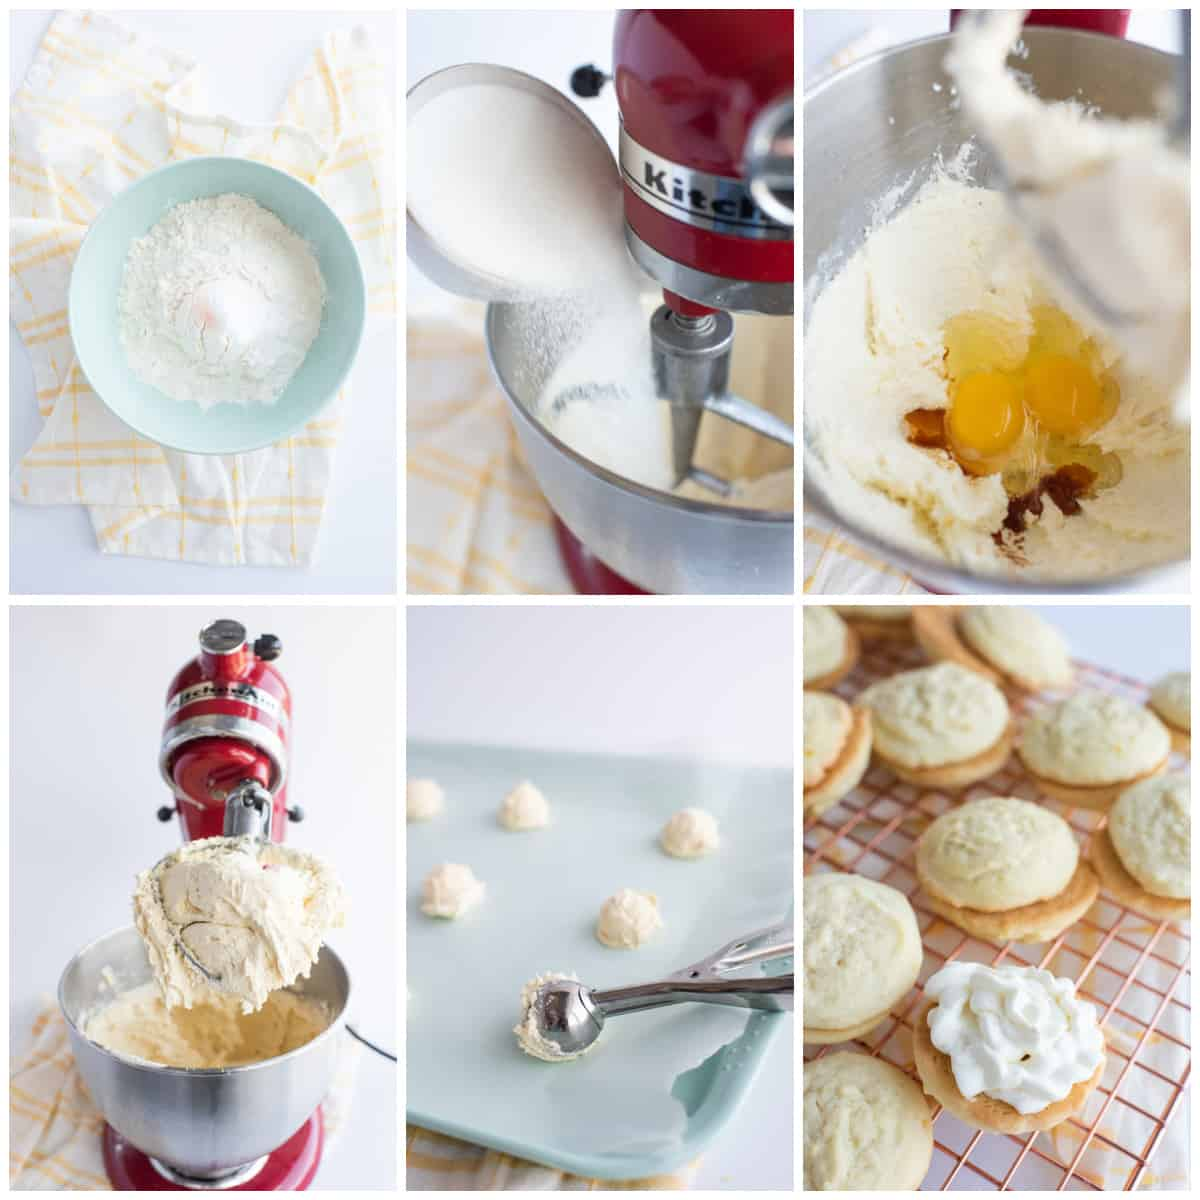 Step by step photos on how to make Lemon Sandwich Cookies